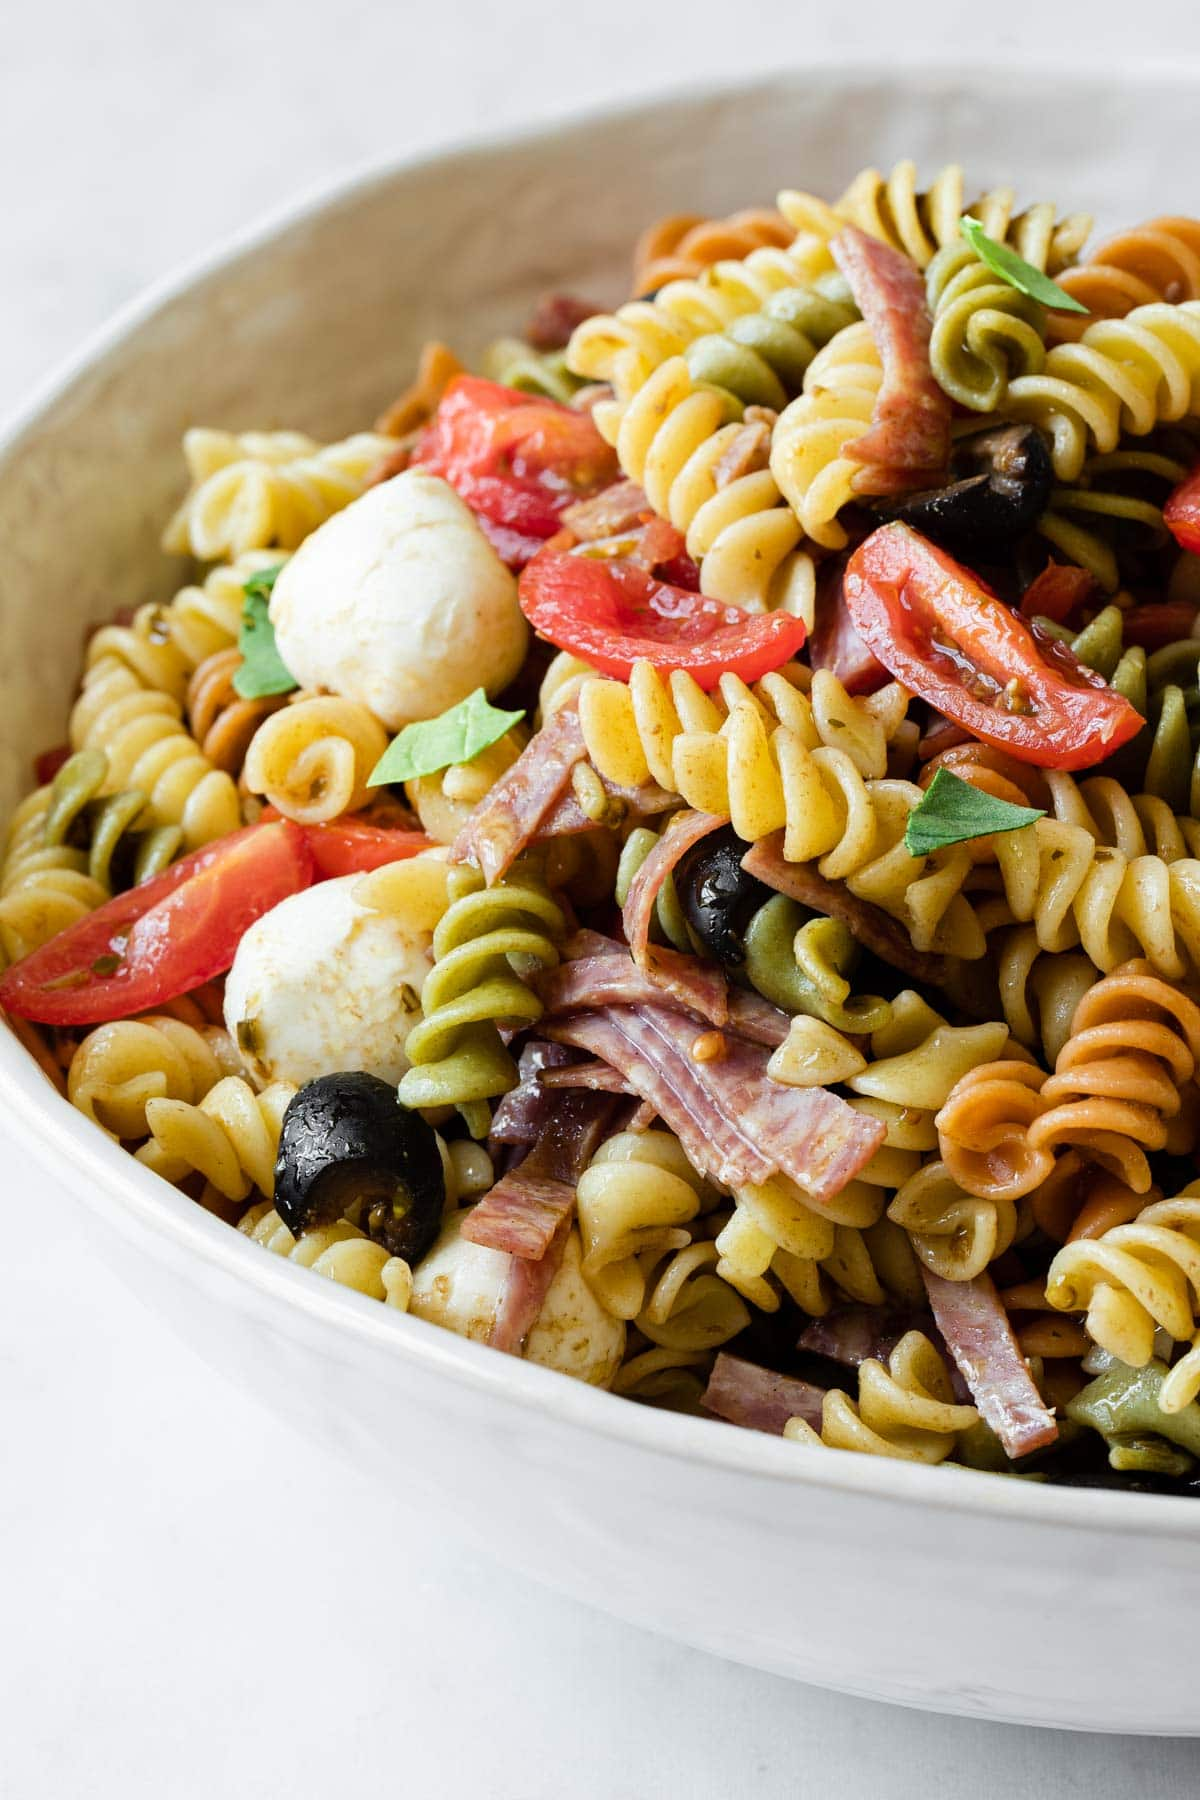 close up view to show the salad ingredients mixed with pasta